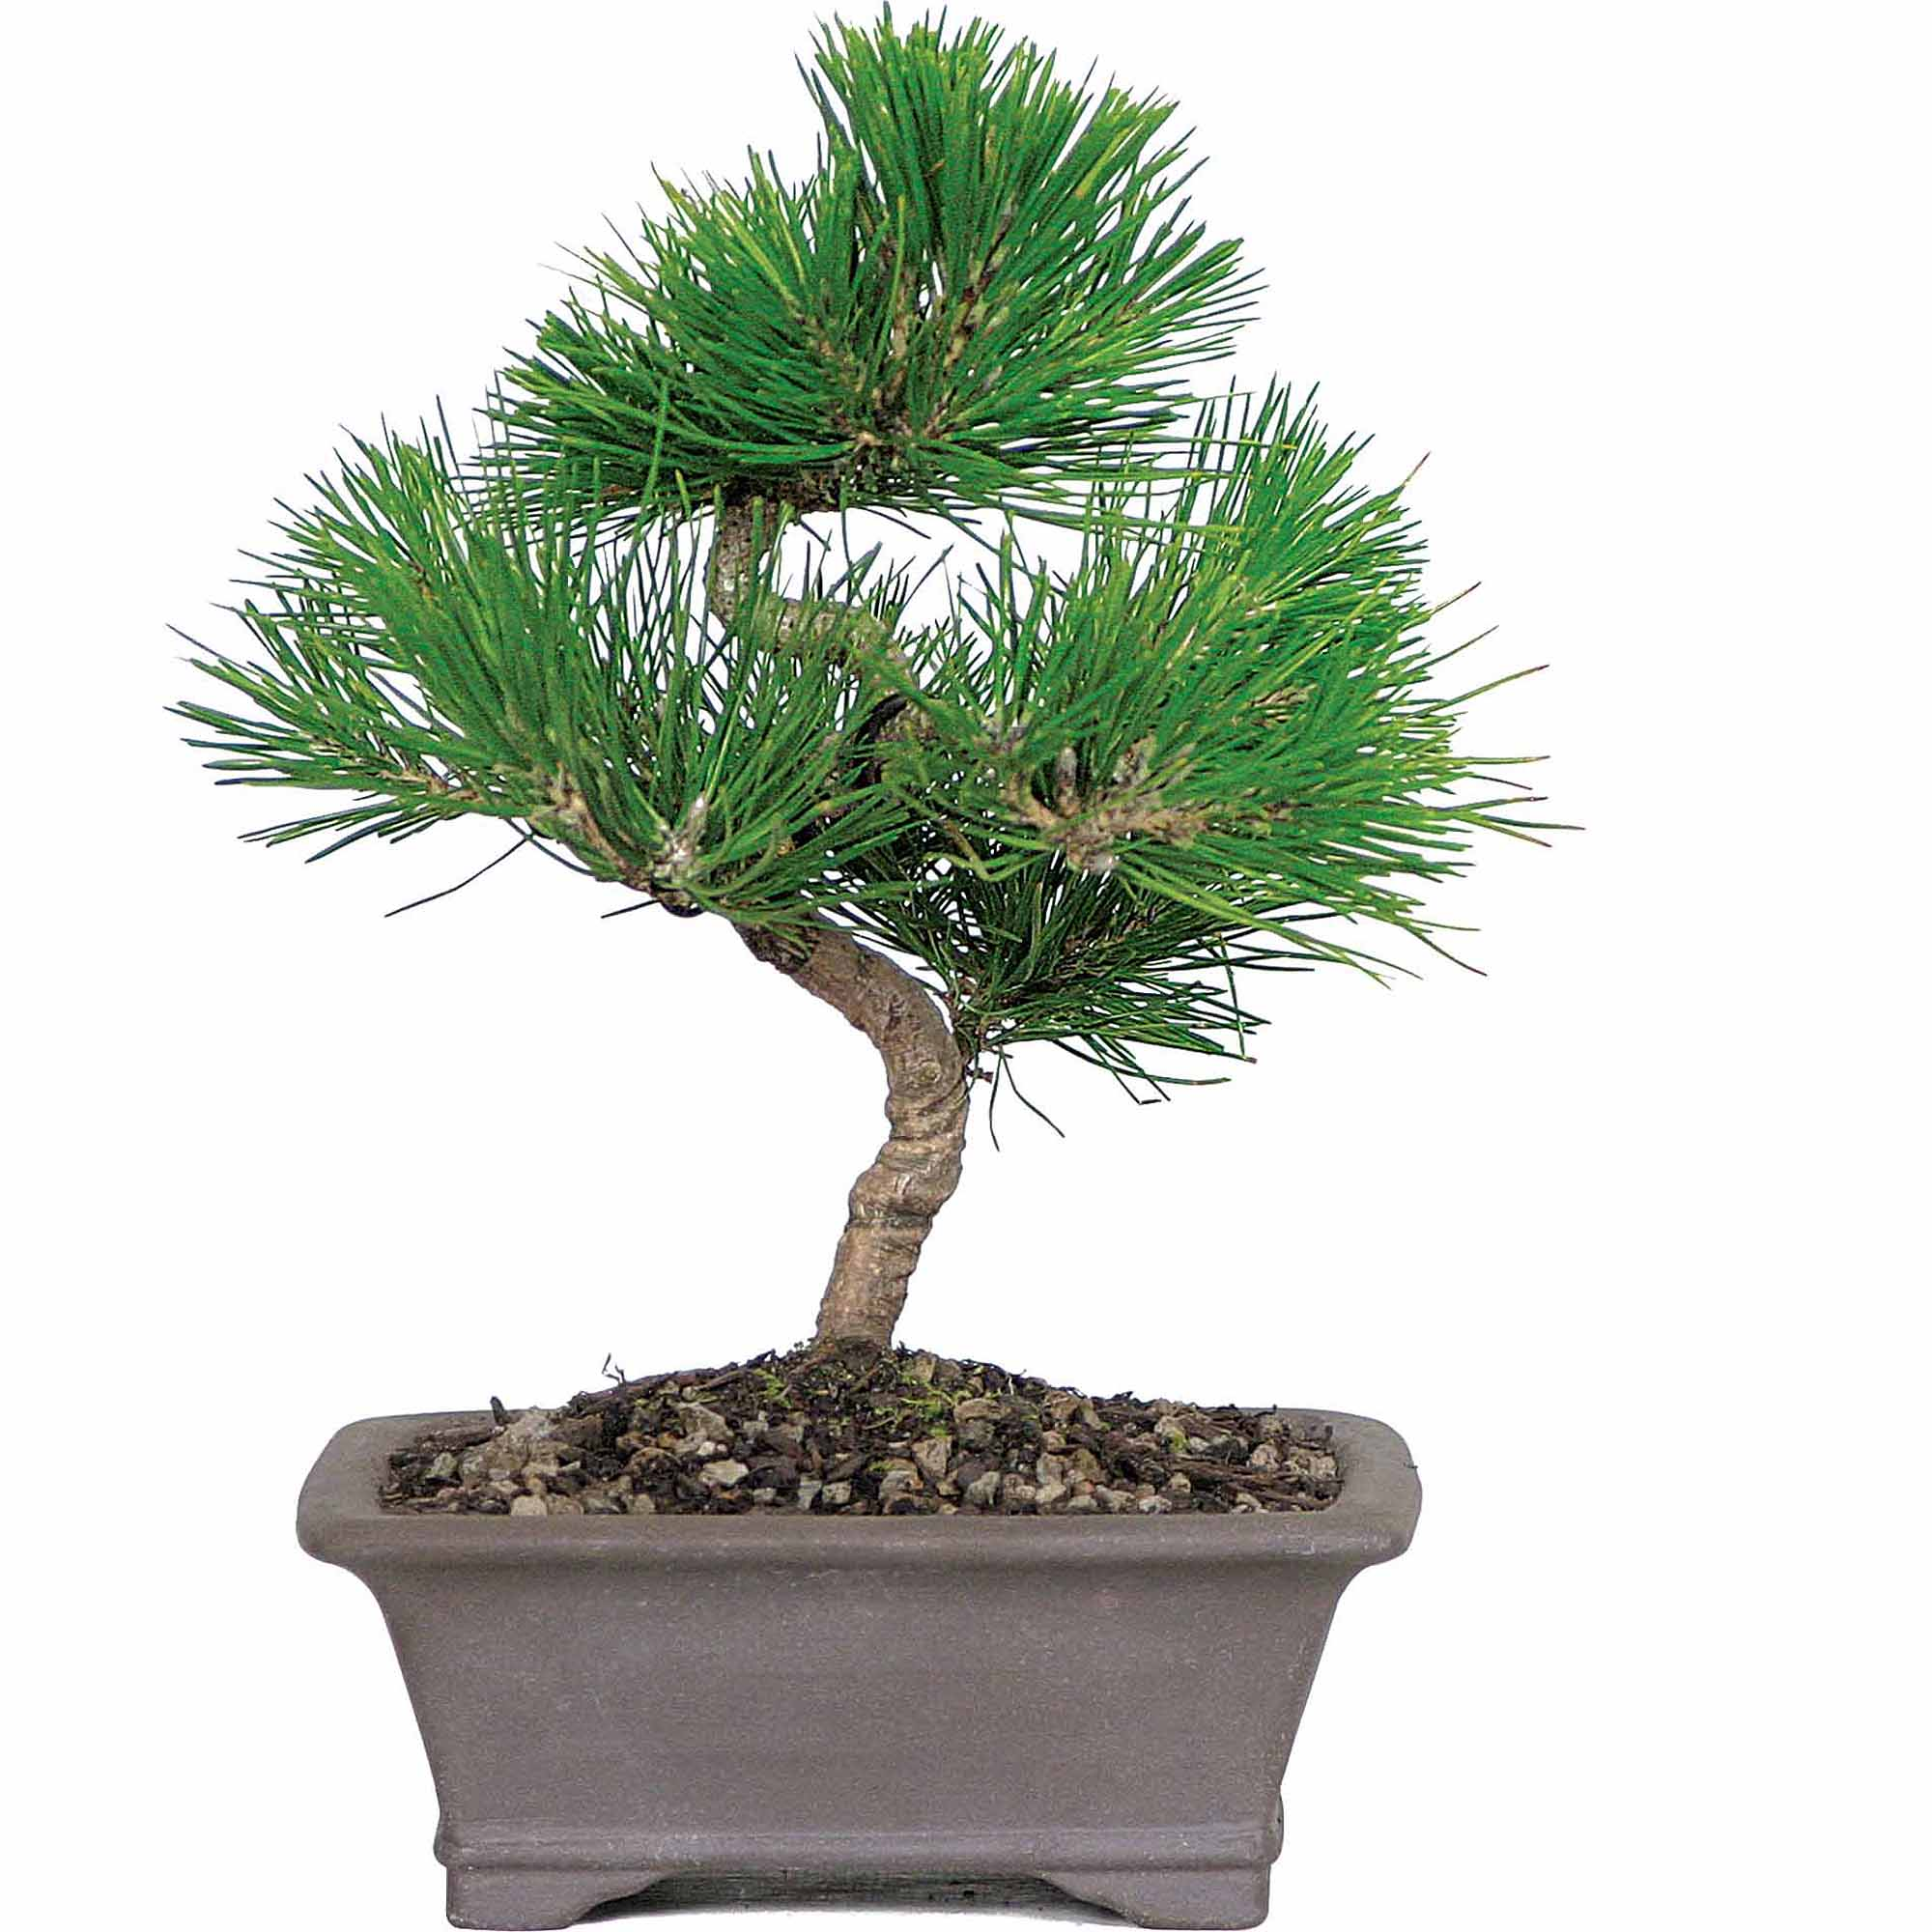 Japanese Black Pine Bonsai Tree Walmart Com Walmart Com